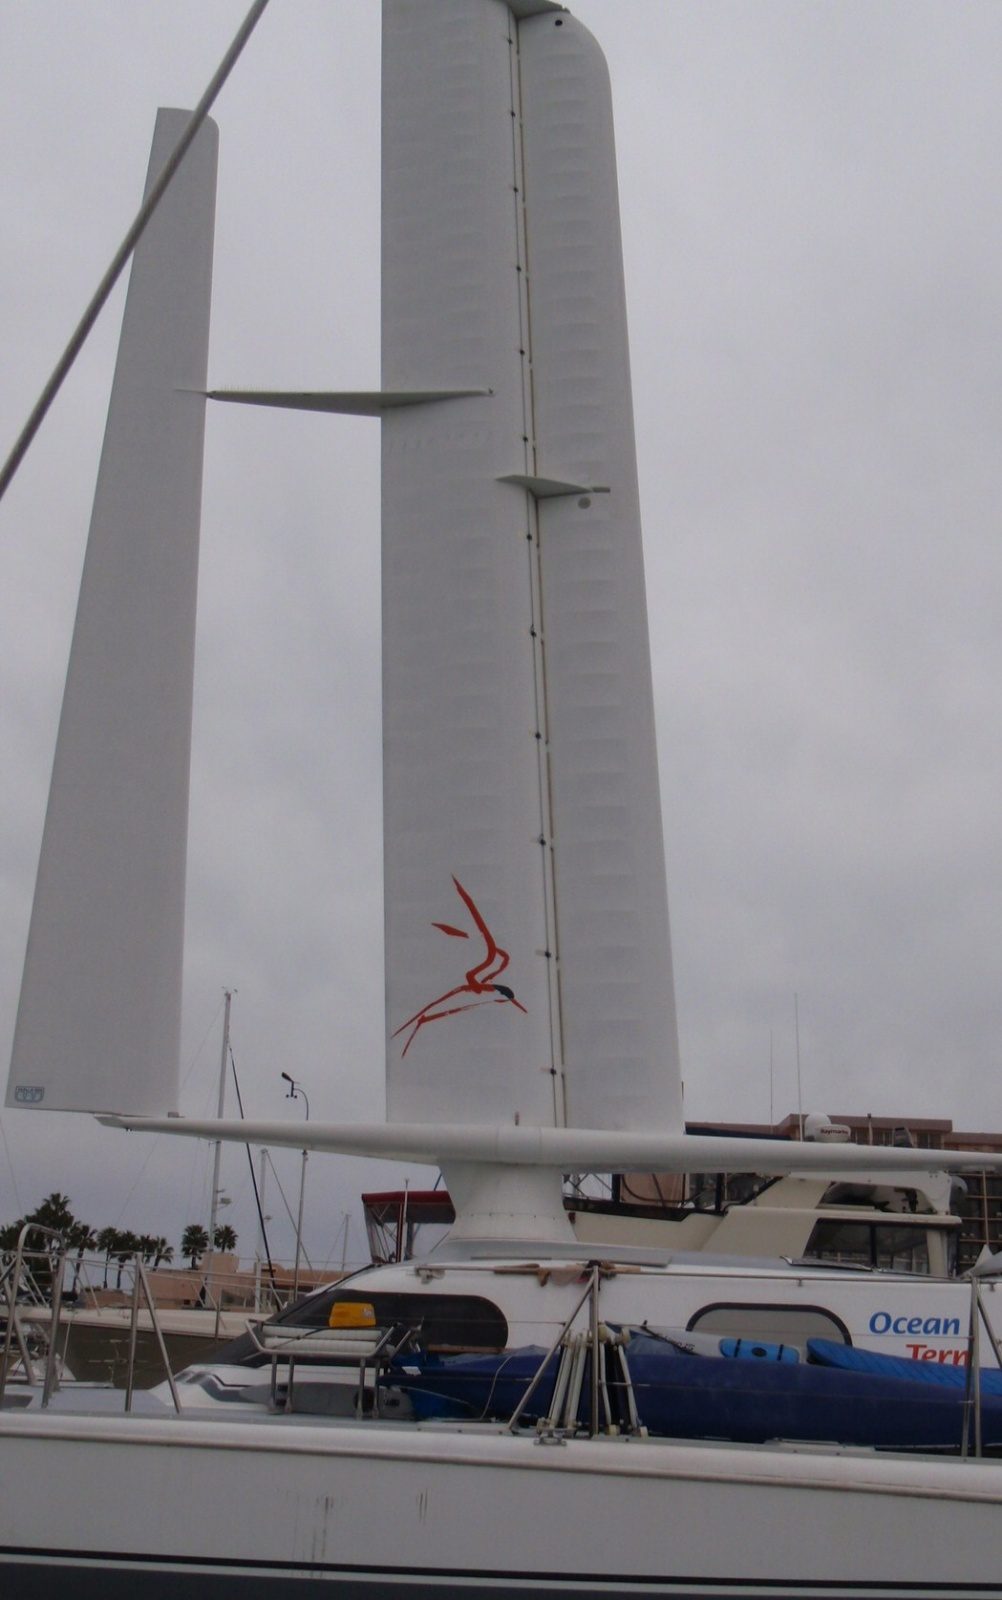 Click image for larger version  Name:Sail.jpg Views:413 Size:286.8 KB ID:7164